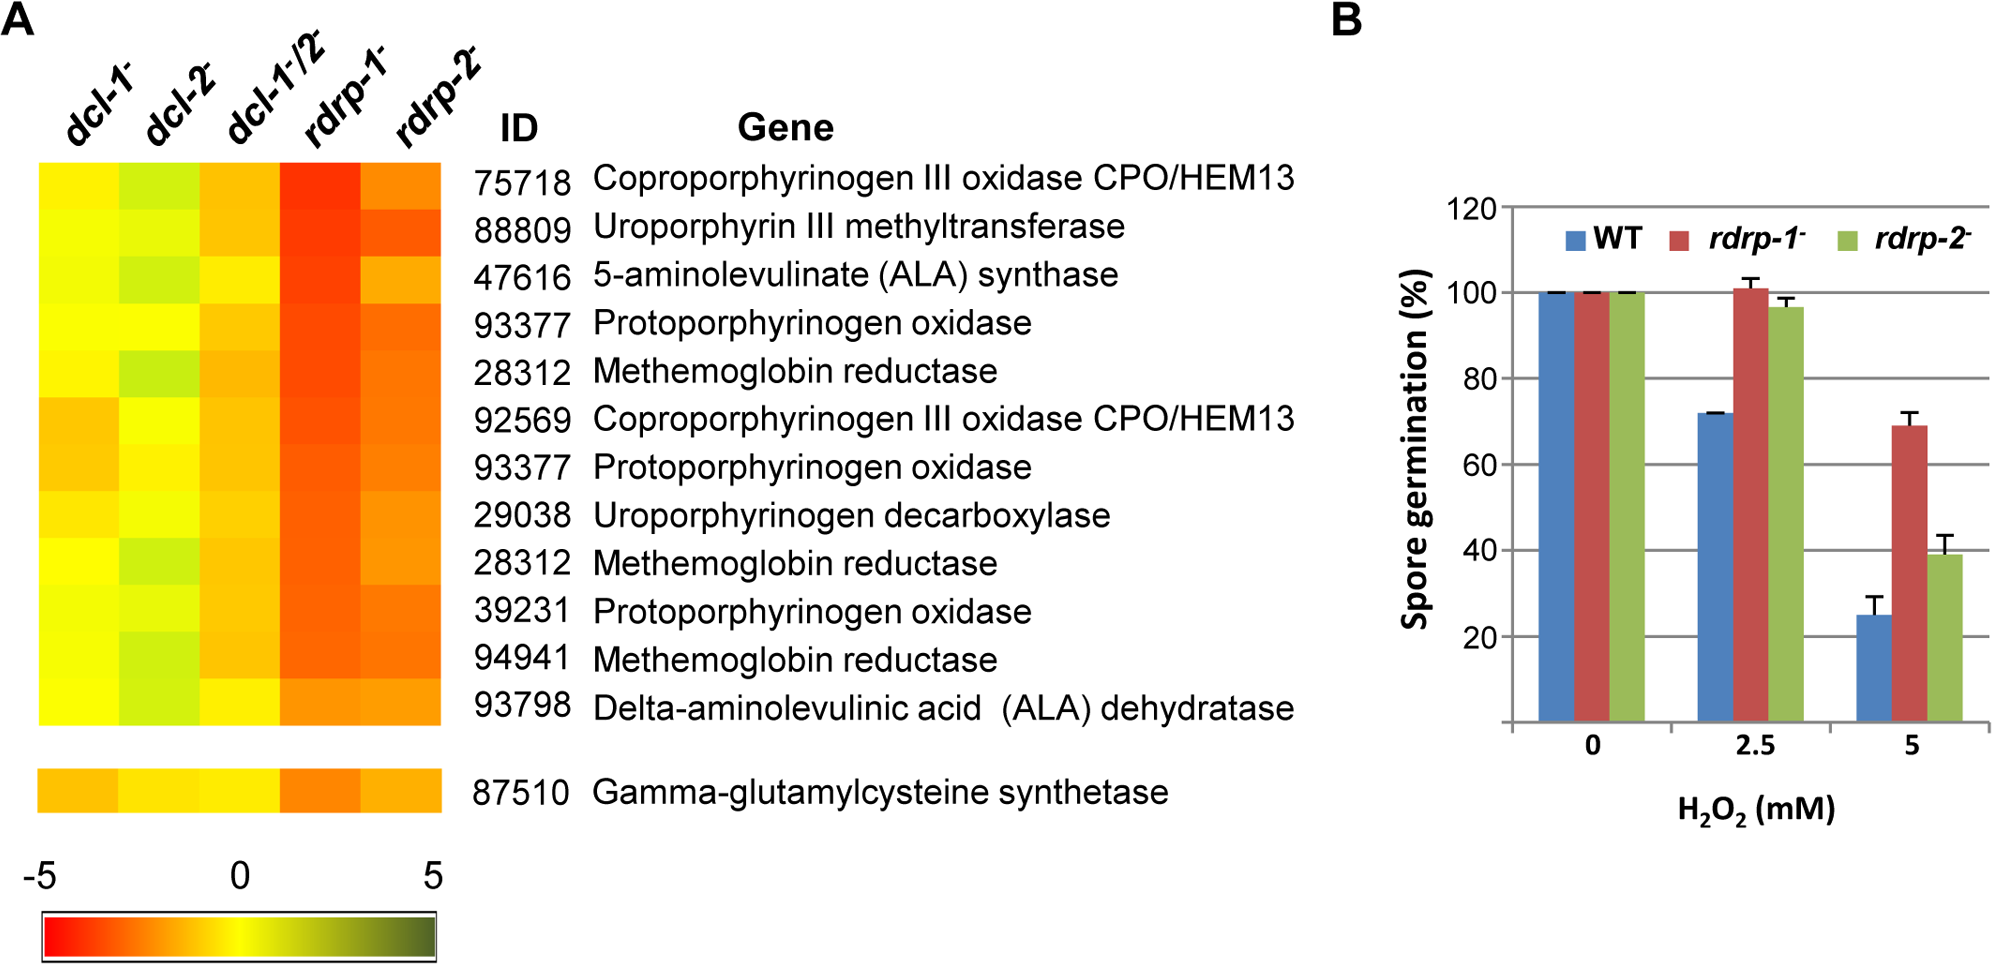 Differential regulation of genes involved in heme B biosynthesis or metabolism and oxidative stress response in <i>rdrp-</i> mutants.